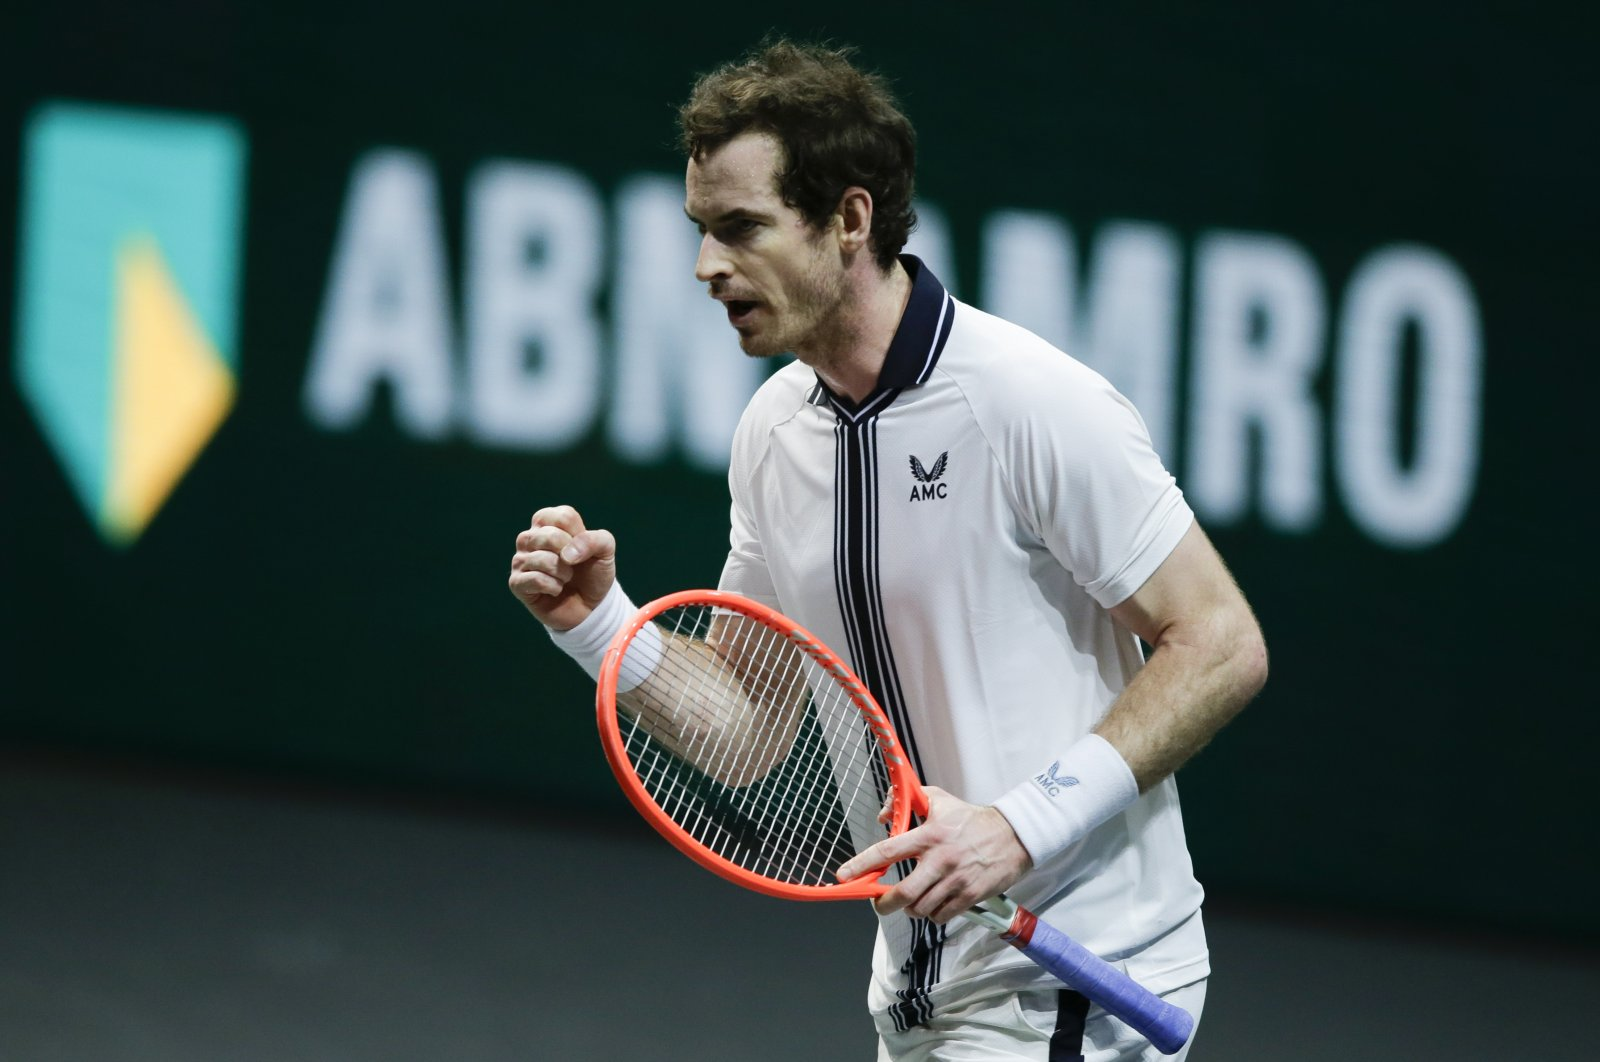 Britain's Andy Murray clenches his fist after defeating Netherland's Robin Haase in the first round of the ABN AMRO world tennis tournament at Ahoy Arena in Rotterdam, Netherlands, March 1, 2021. (AP Photo)